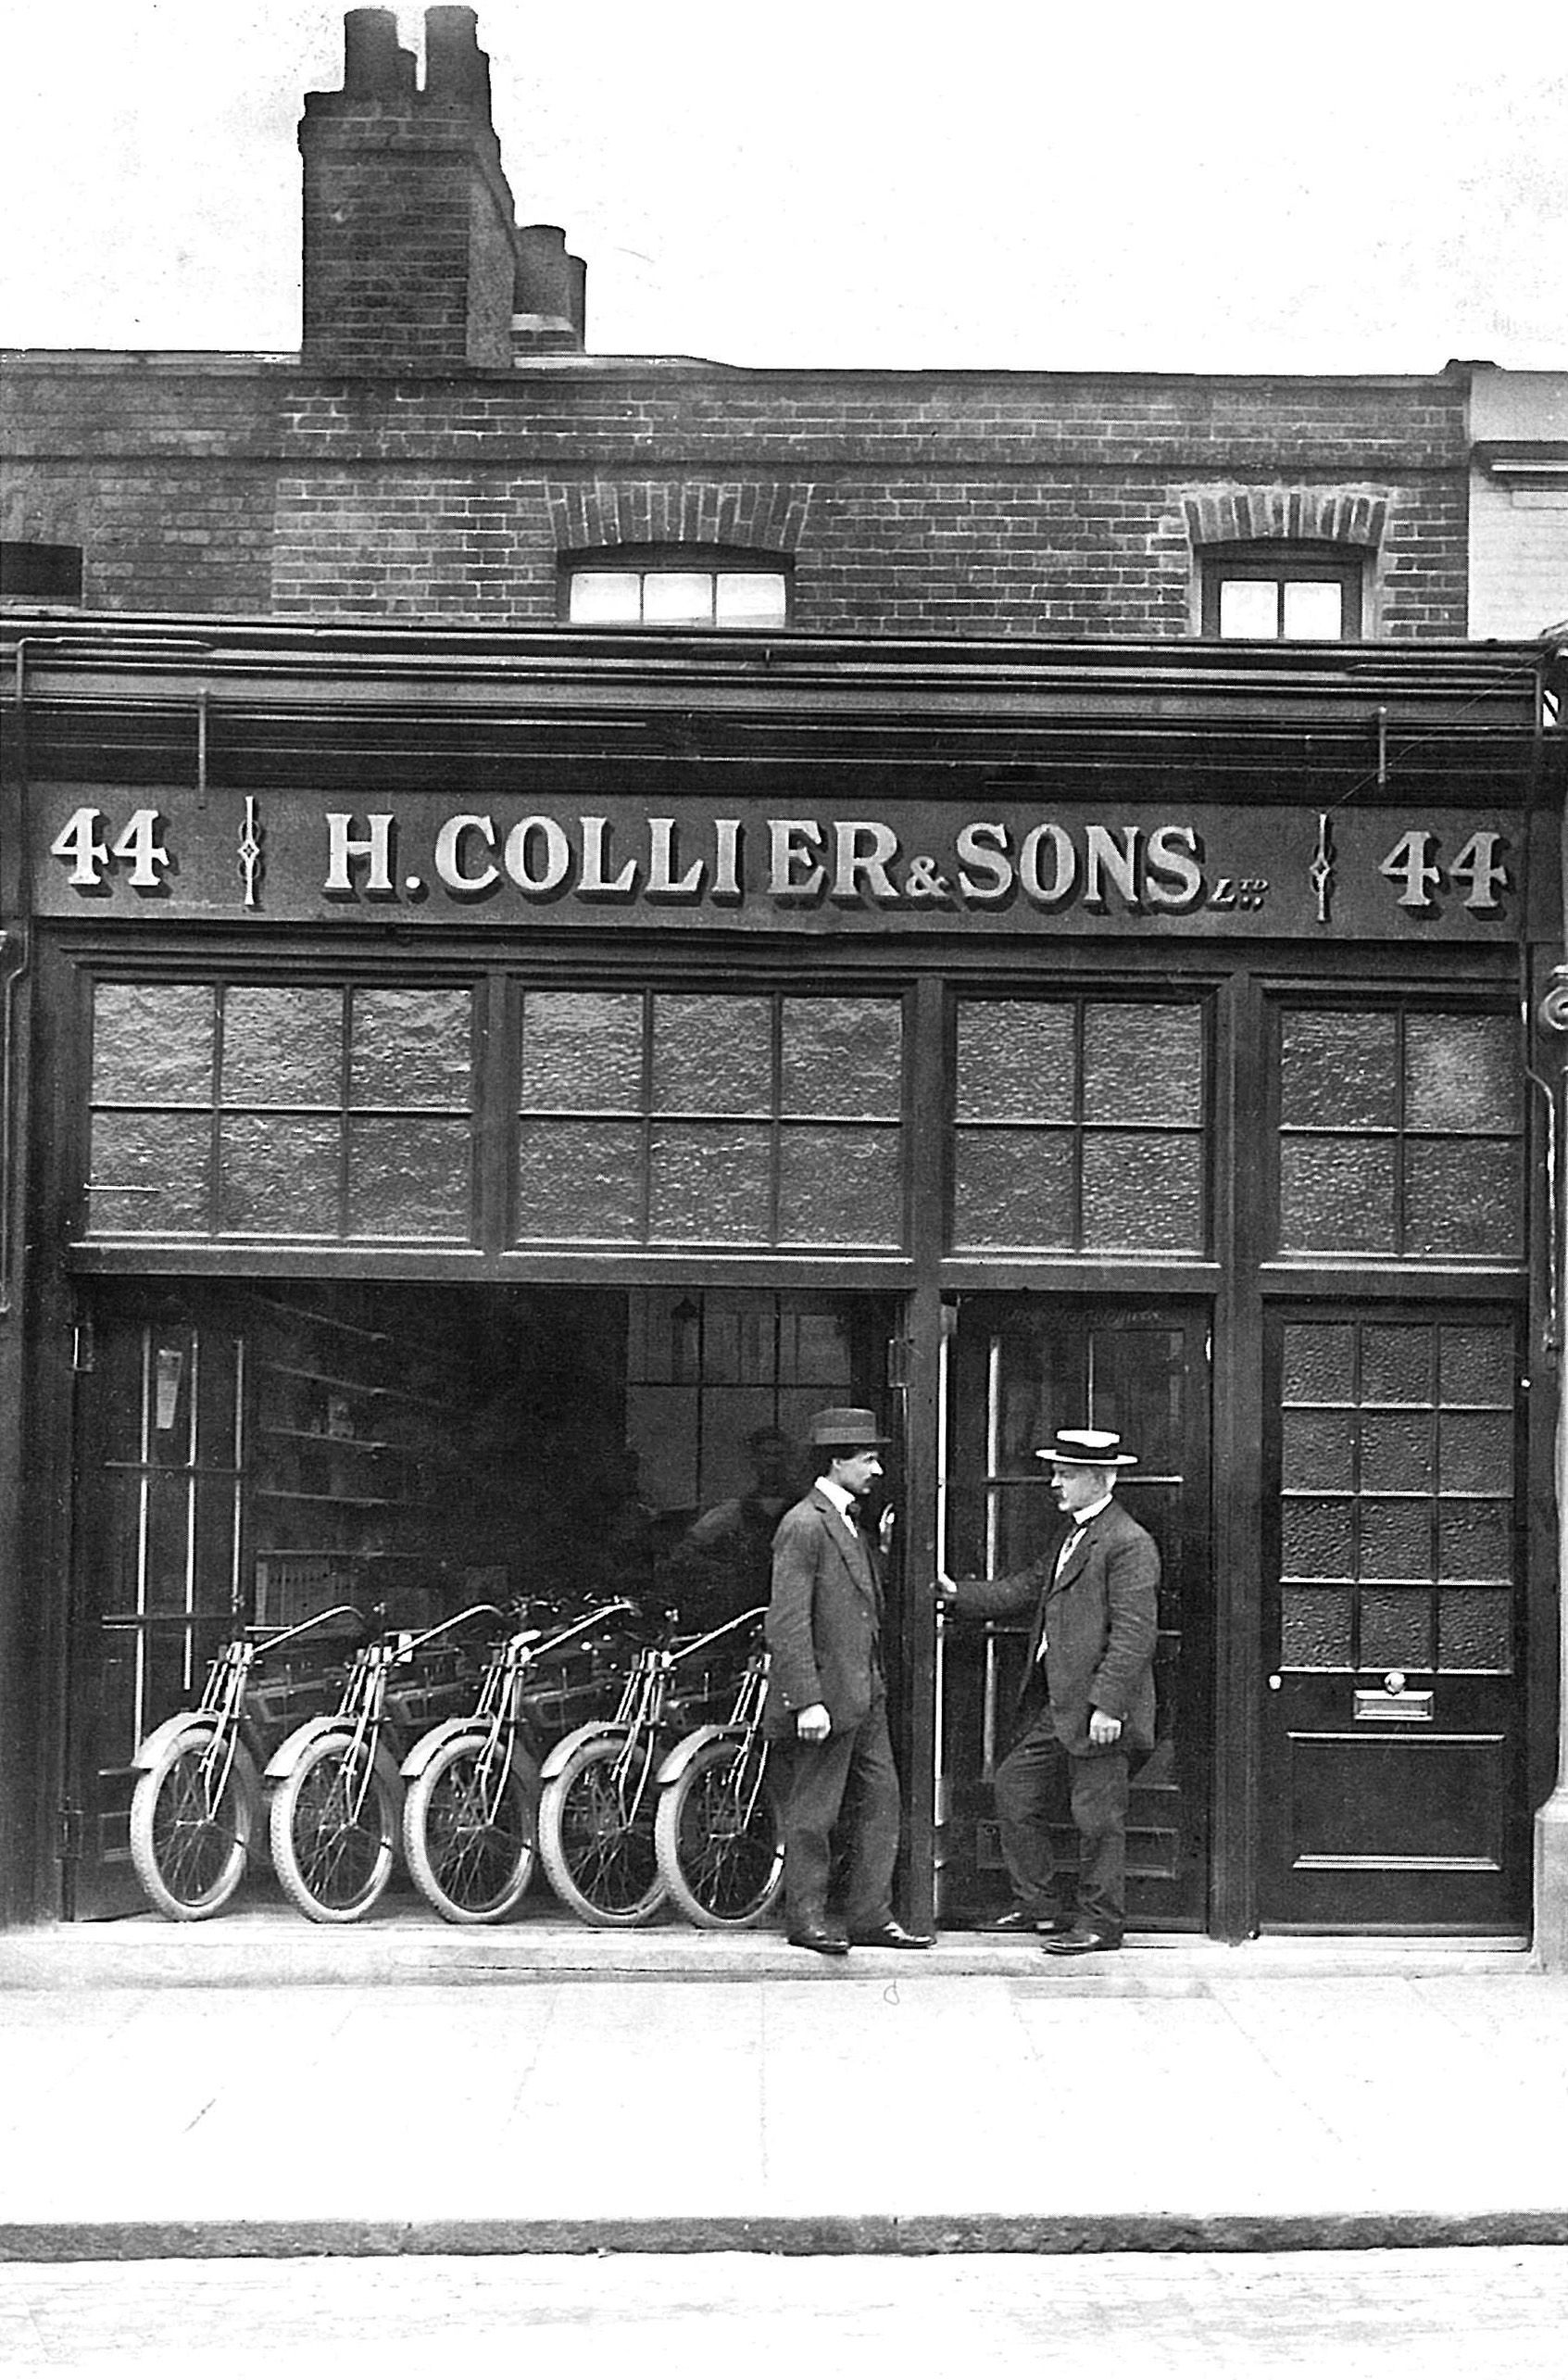 A collier and sons